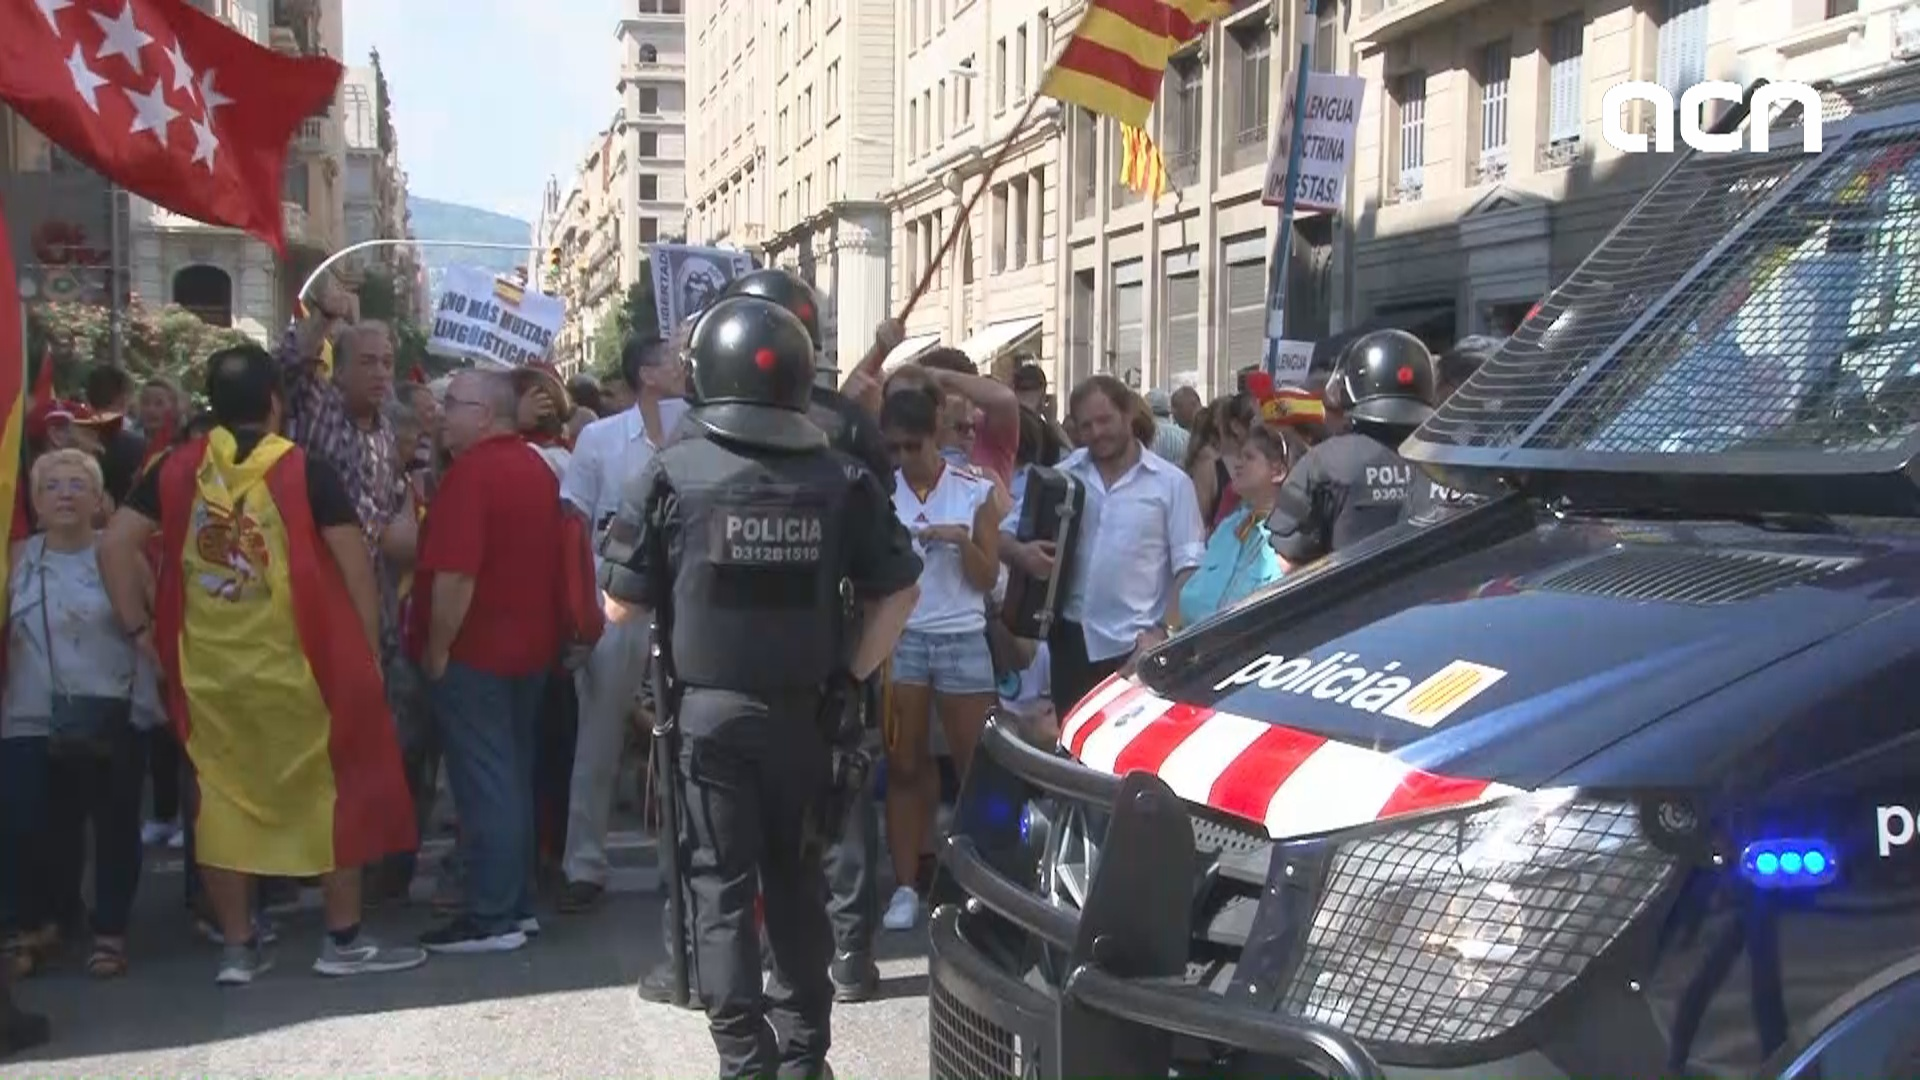 Tension between protesters for and against schooling in Catalan